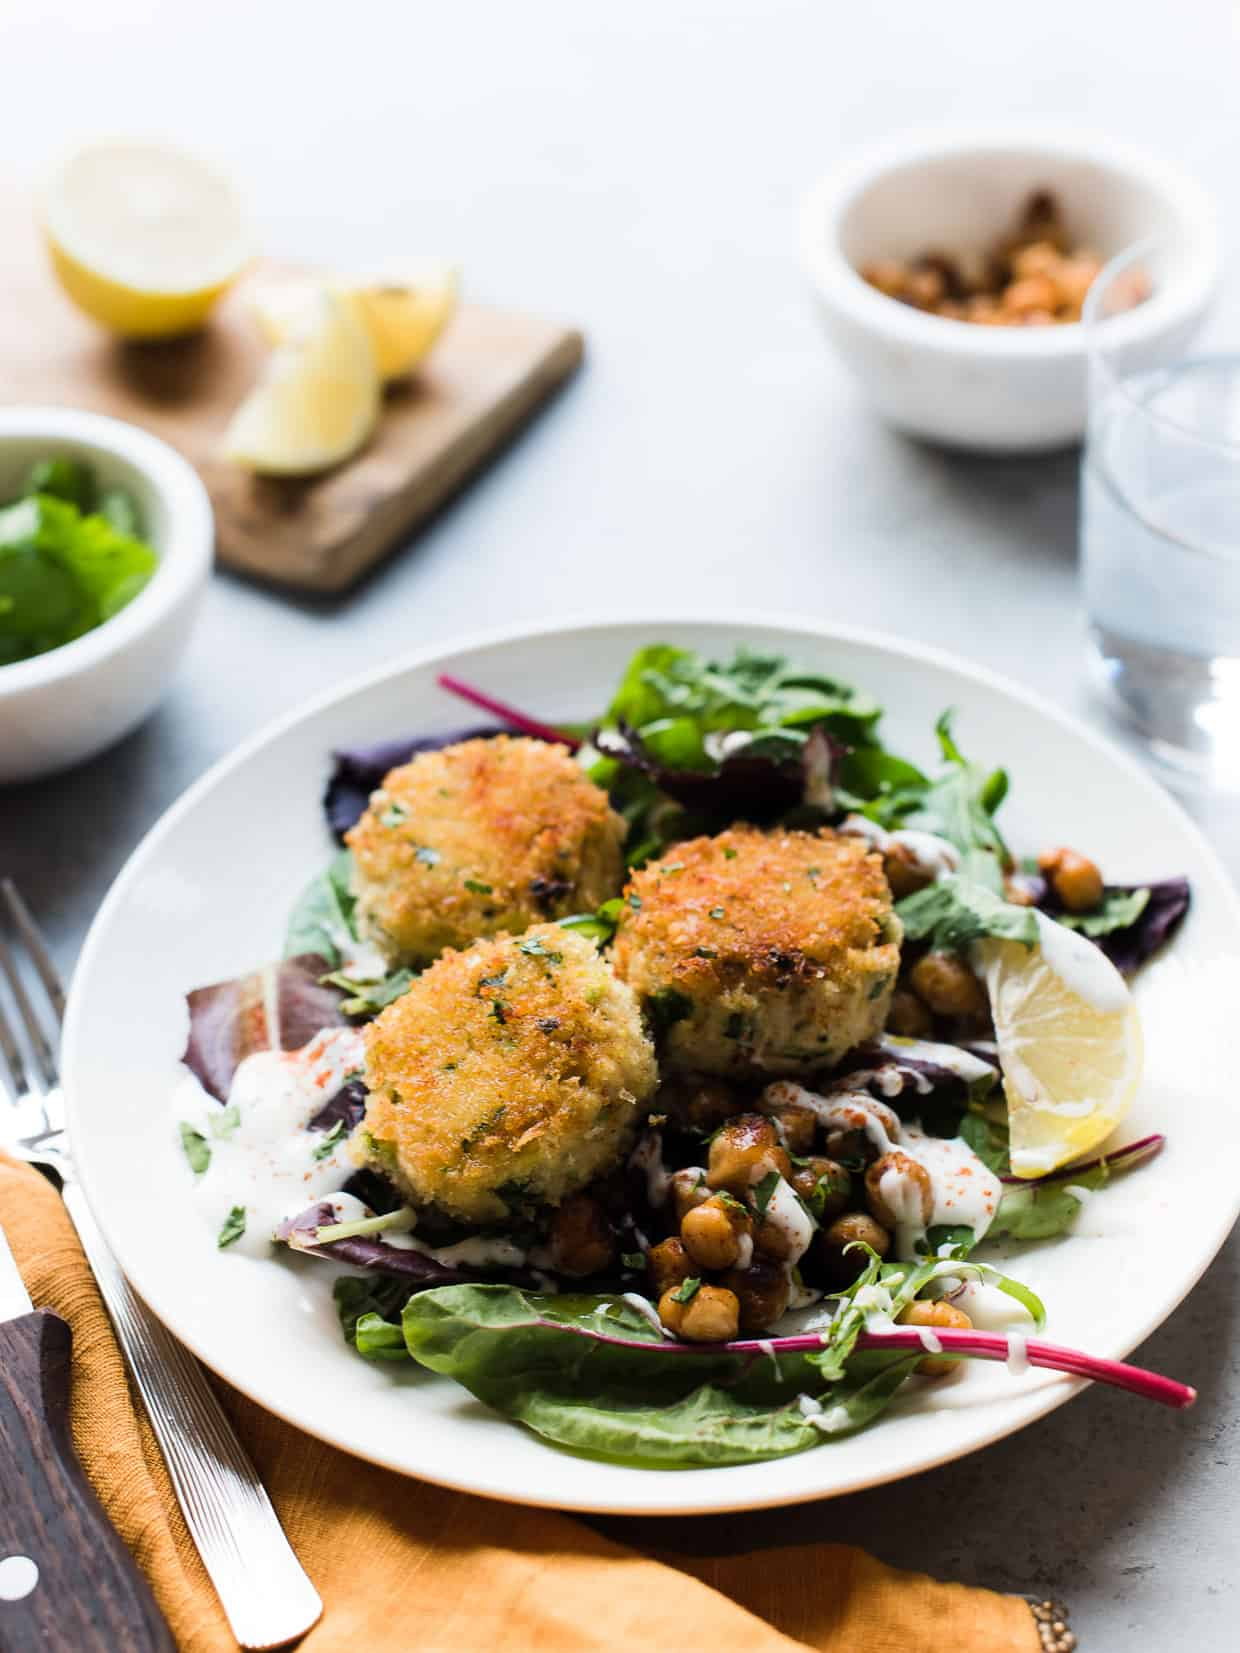 Chickpea Crab Cakes served on top of a fresh green salad.